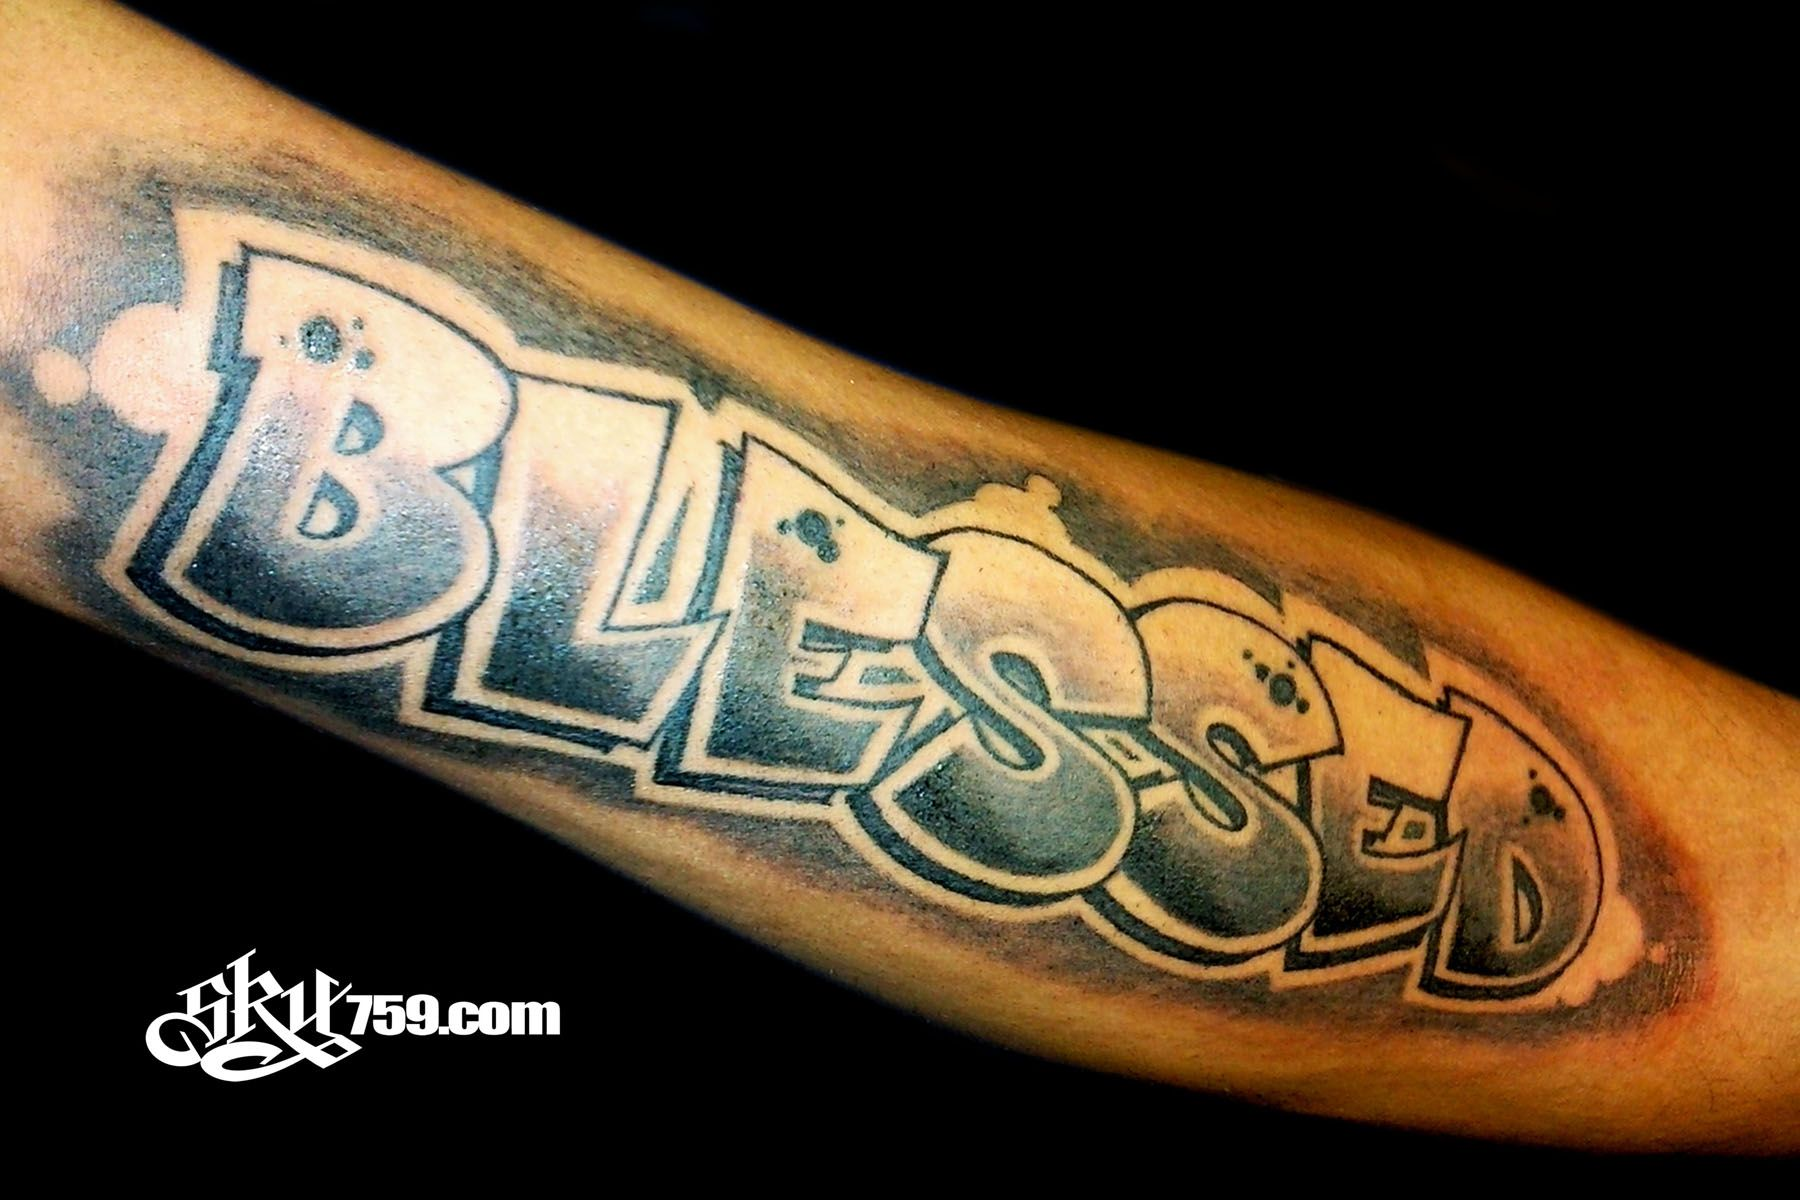 Blessed Tattoo Designs Pin Truly Blessed Tattoo On Chest On Pinterest Blessed Tattoo On Chest Blessed Tattoos Tattoo Designs